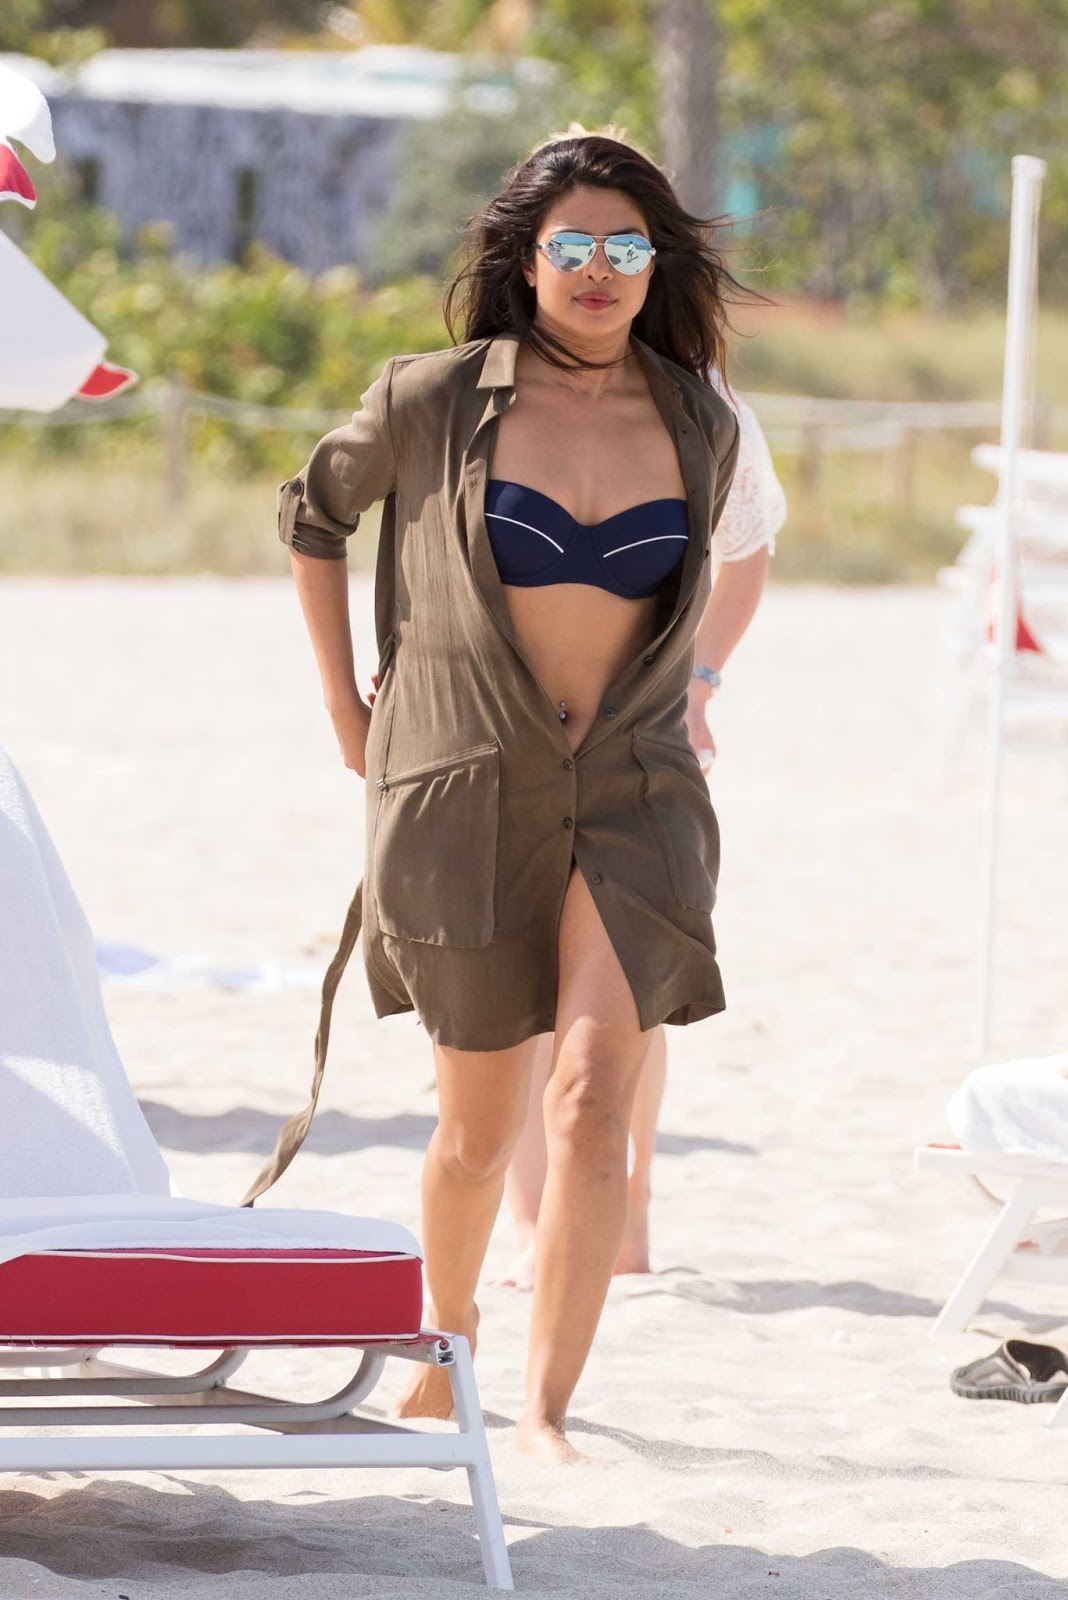 Adriana Lima and Priyanka Chopra in Bikini on the Beach in Miami